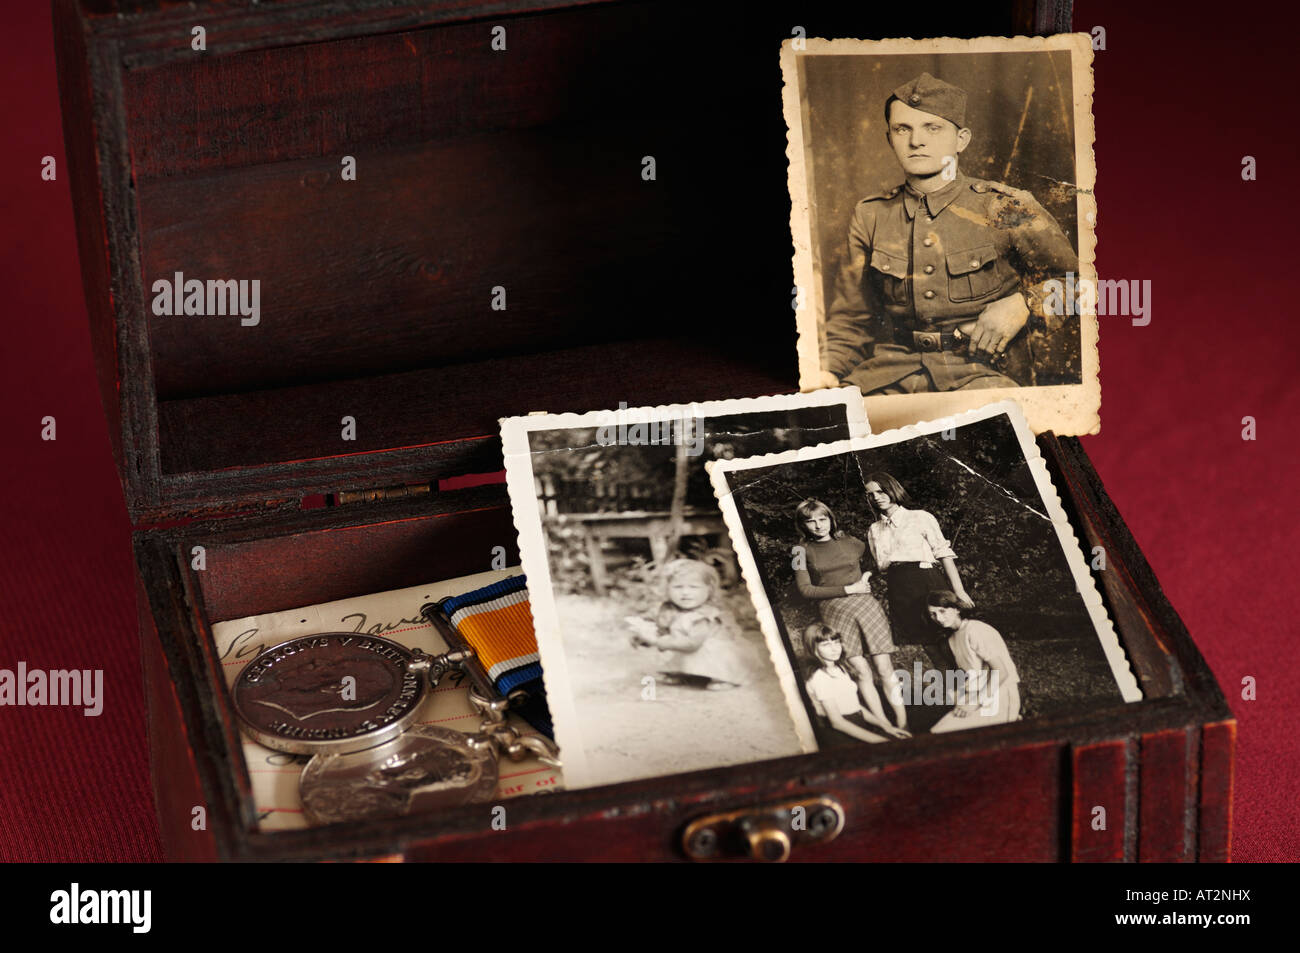 Nostalgia and Memories A Box of Old Photographs Military Medals and Papers All Family Heirlooms - Stock Image